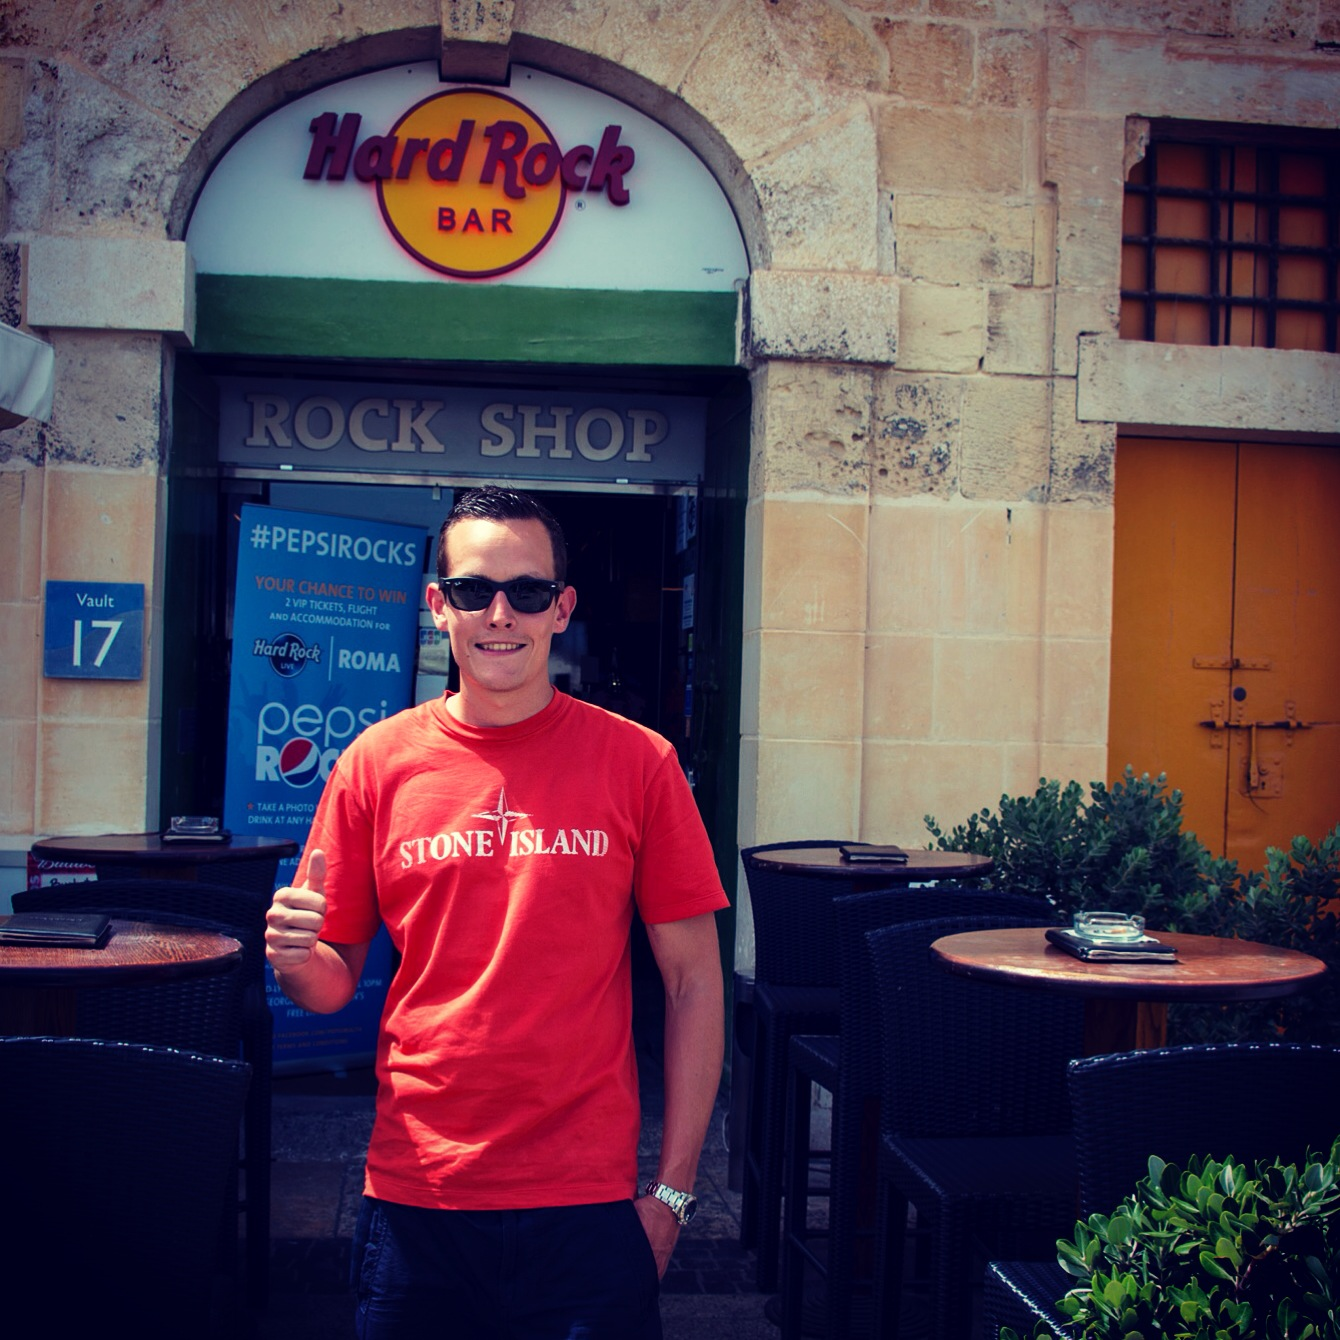 Hard Rock Bar Malta - visited in 2014